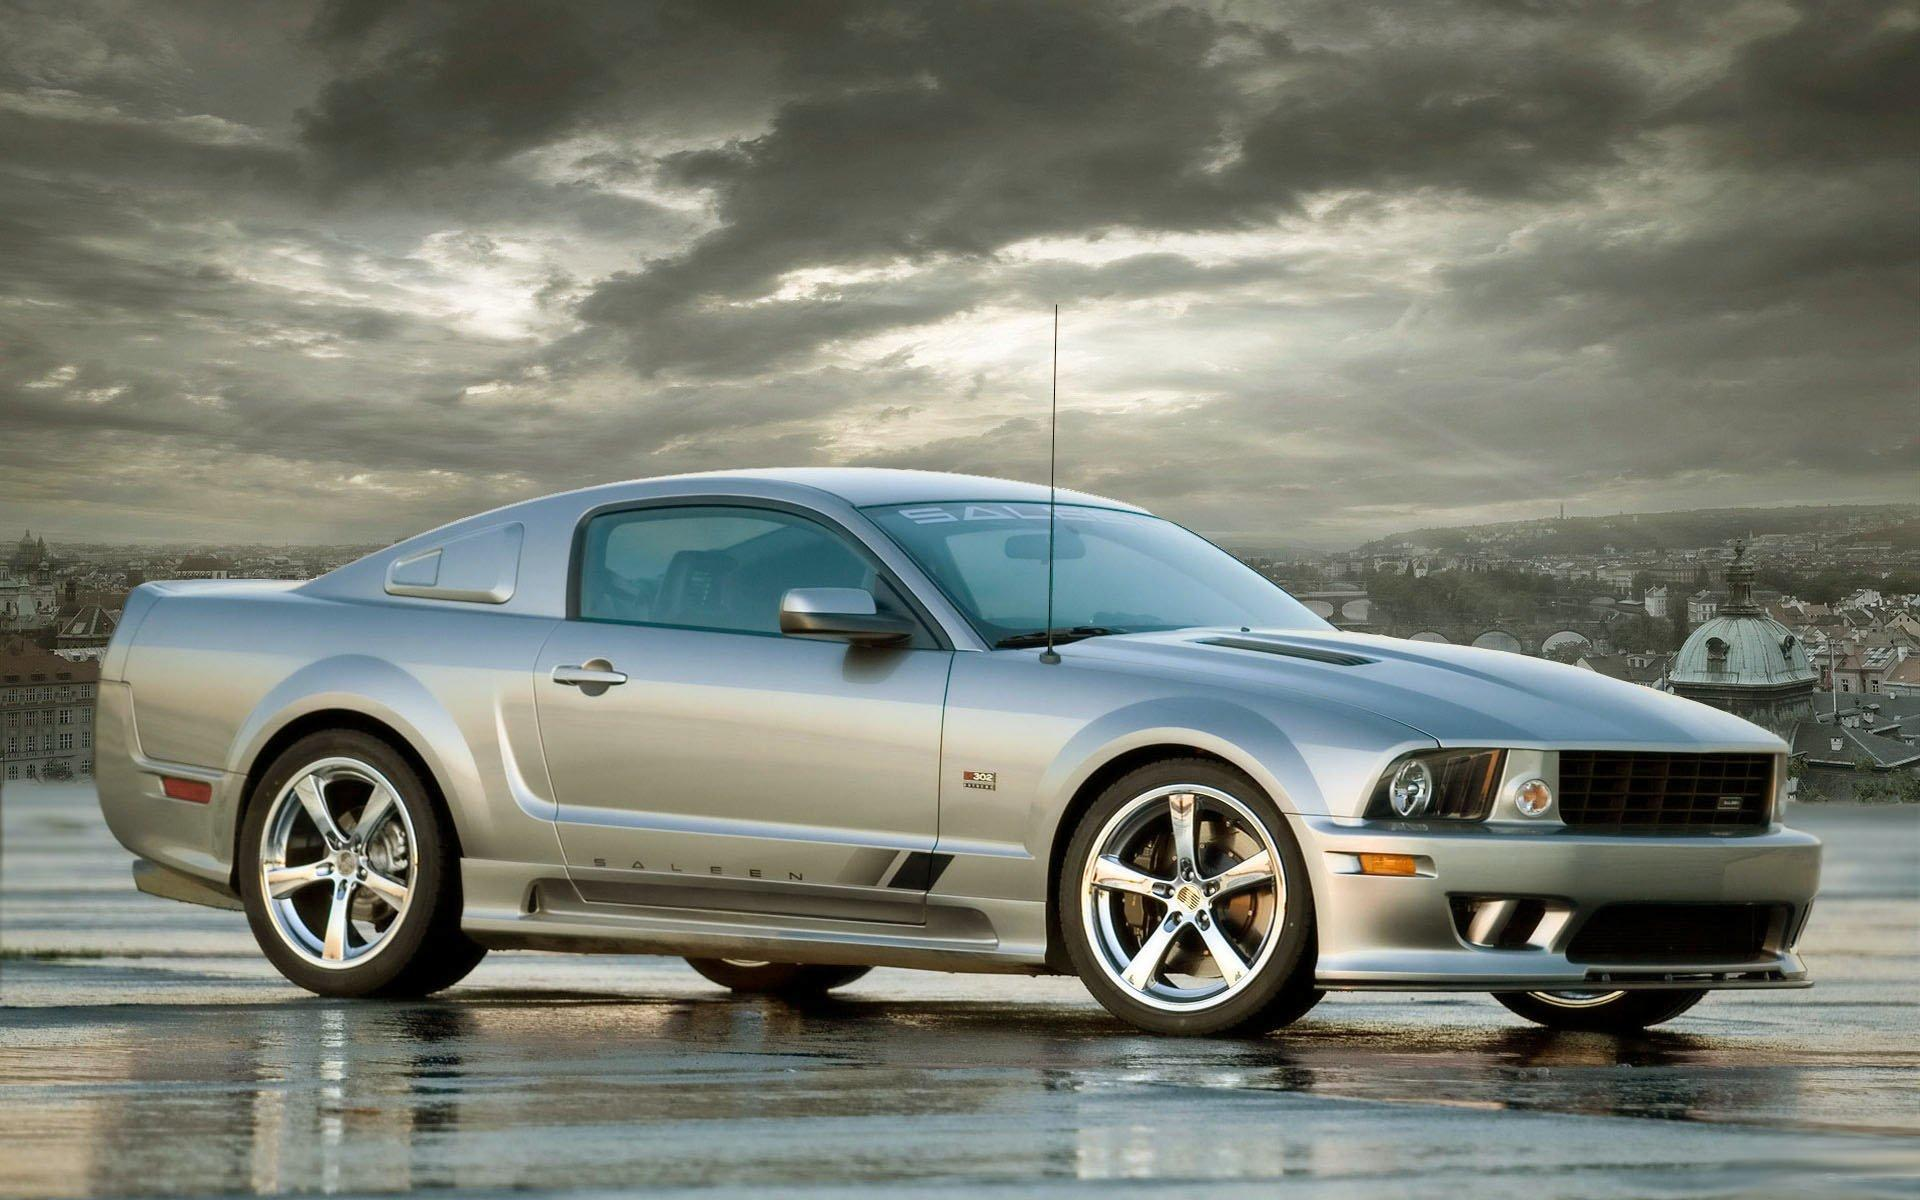 Ford Mustang (SALEEN)